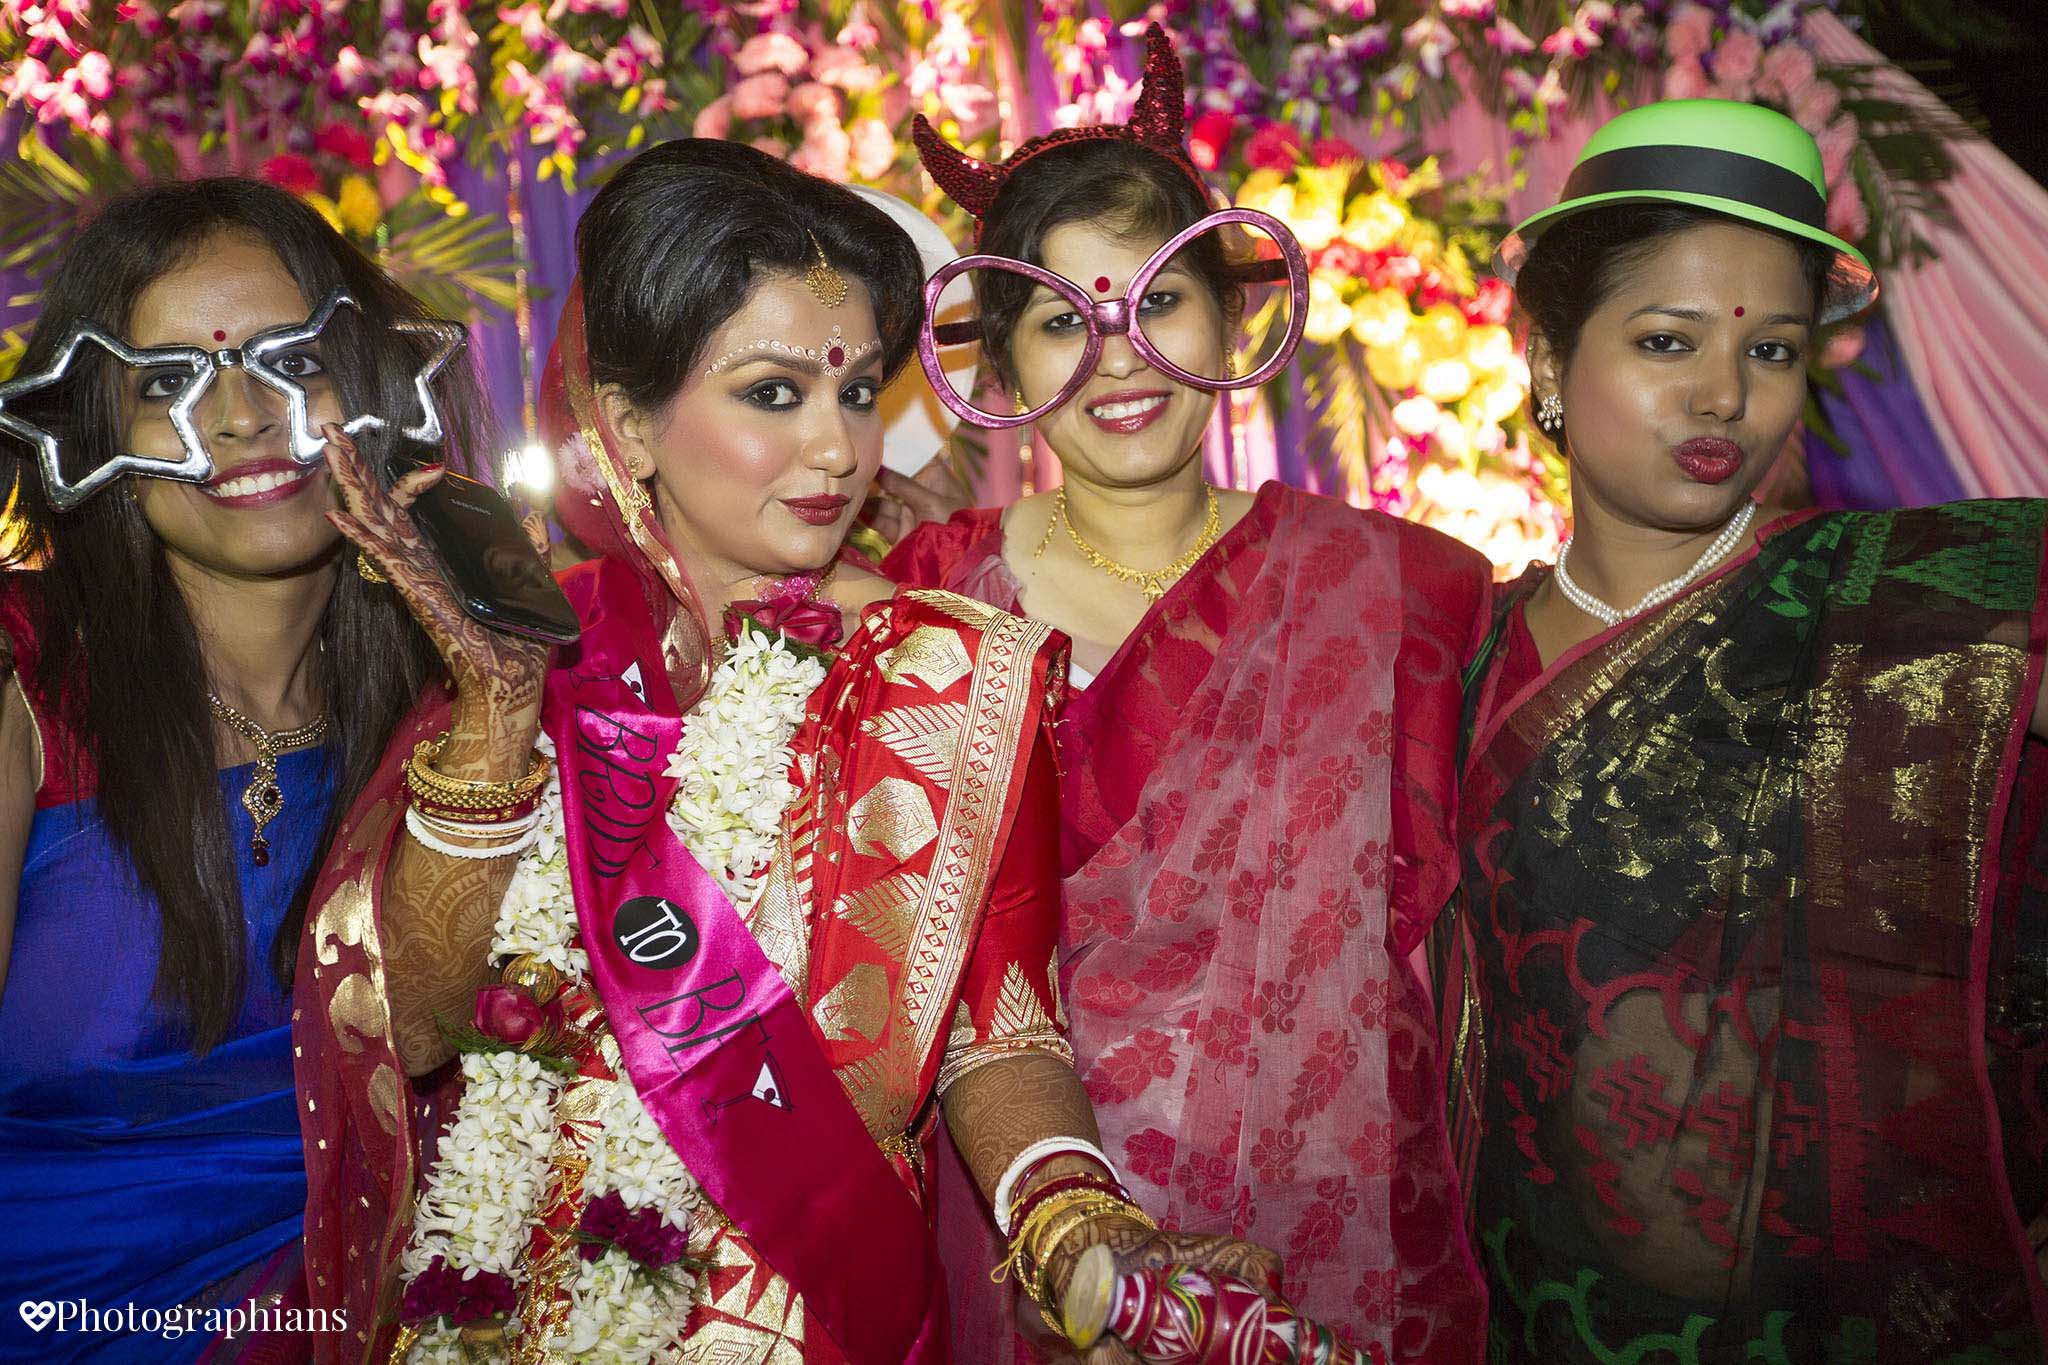 Photographians_Indian_Destination_Wedding_220